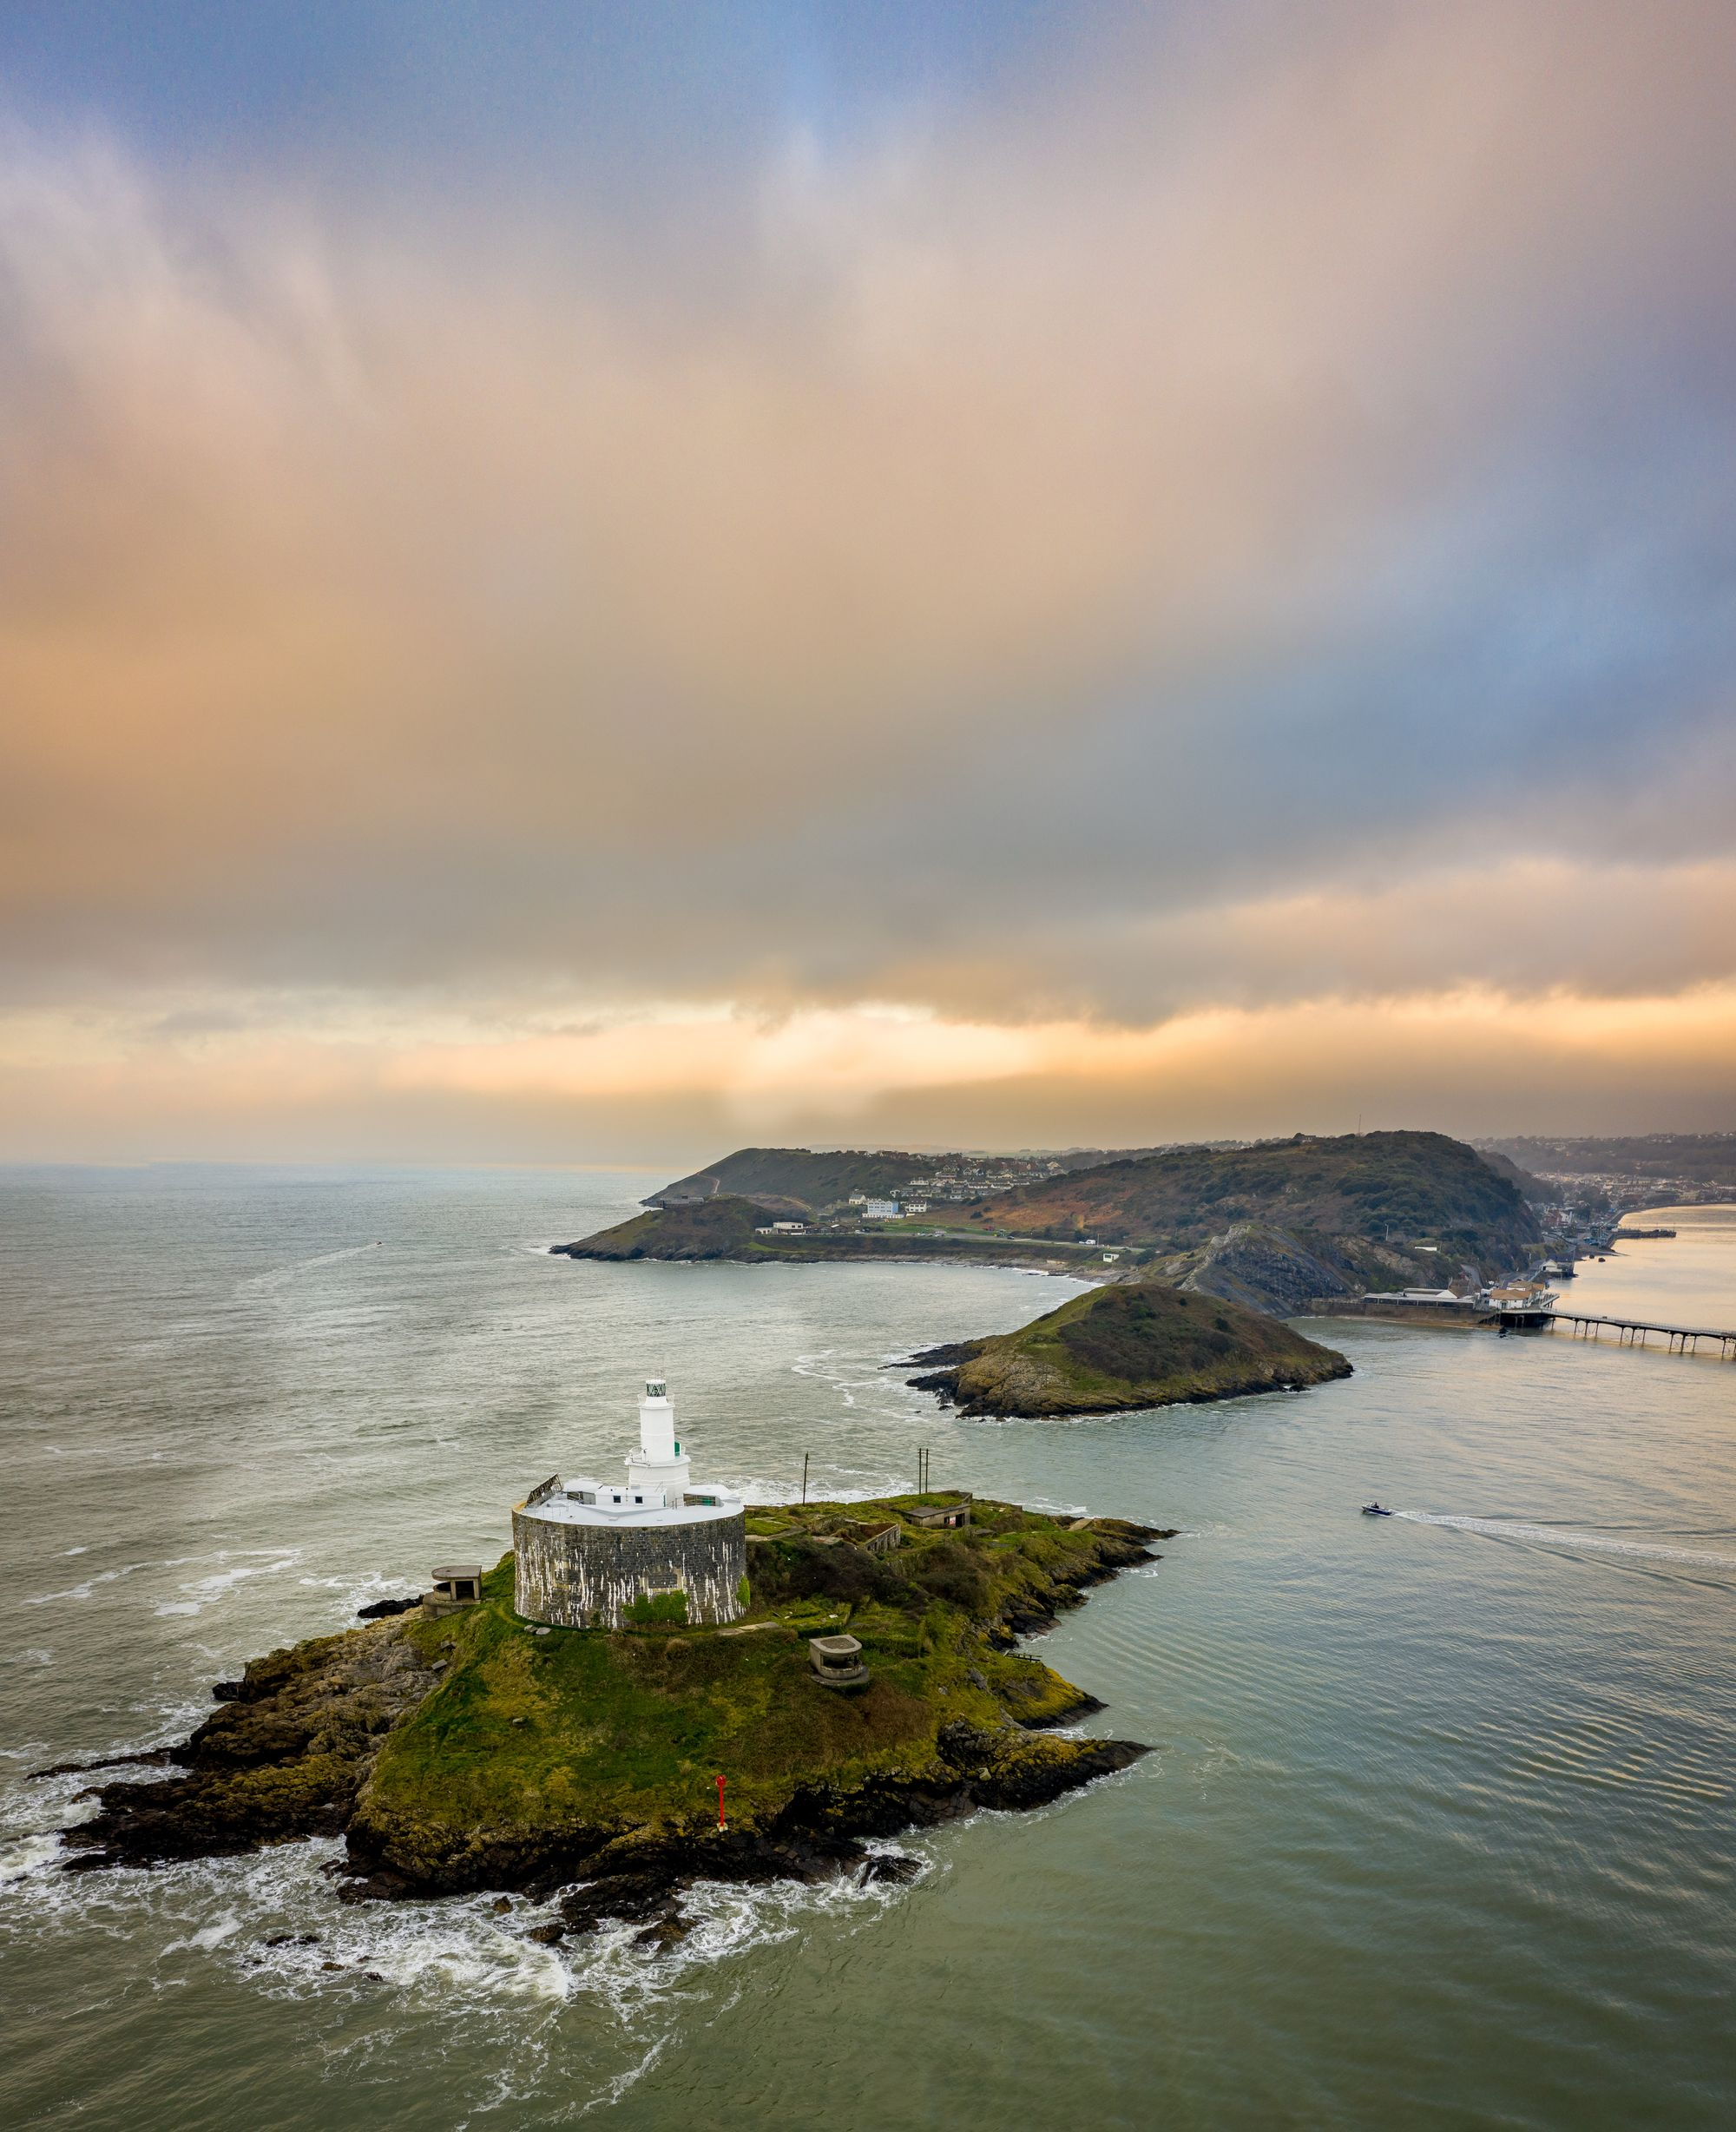 Arial view of a Offshore island with lighthouse on Mumbles Head in Swansea Bay